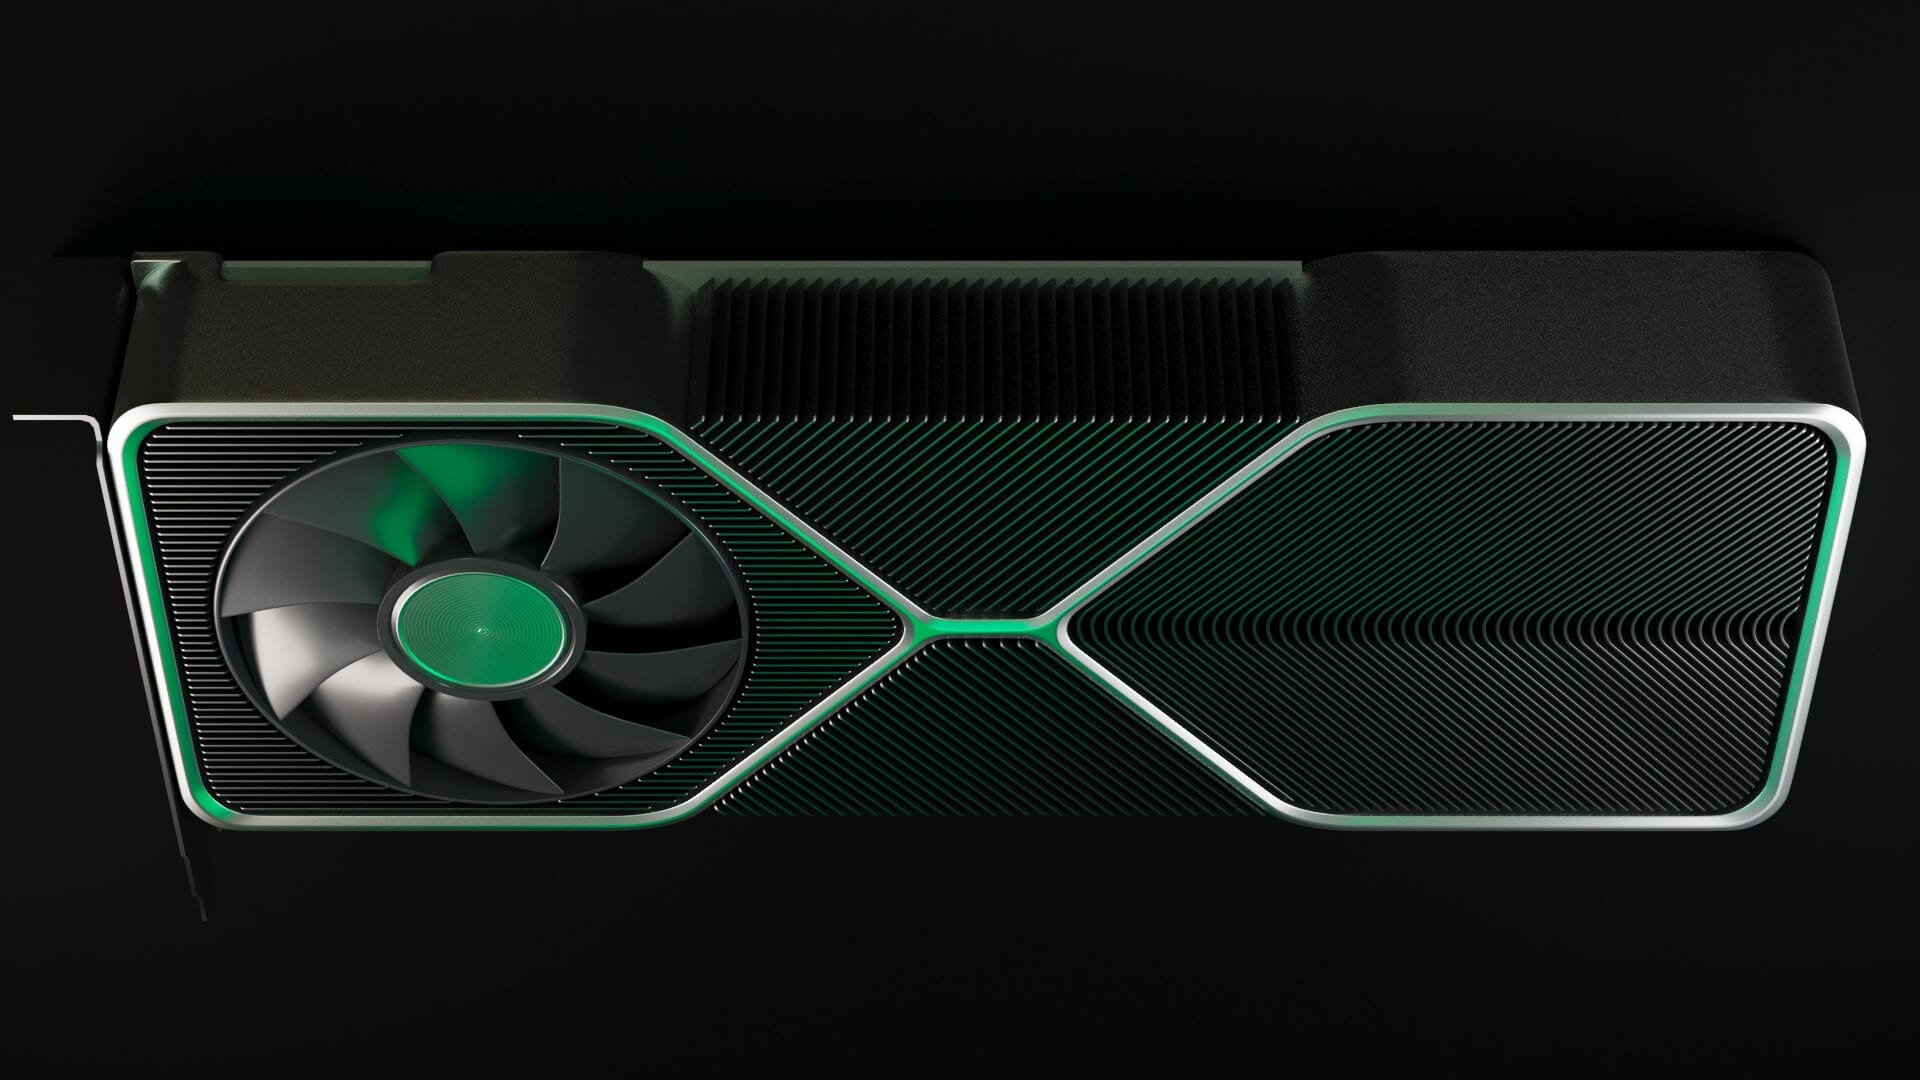 Check out these awesome renders of NVIDIA's next-gen GeForce RTX 3080